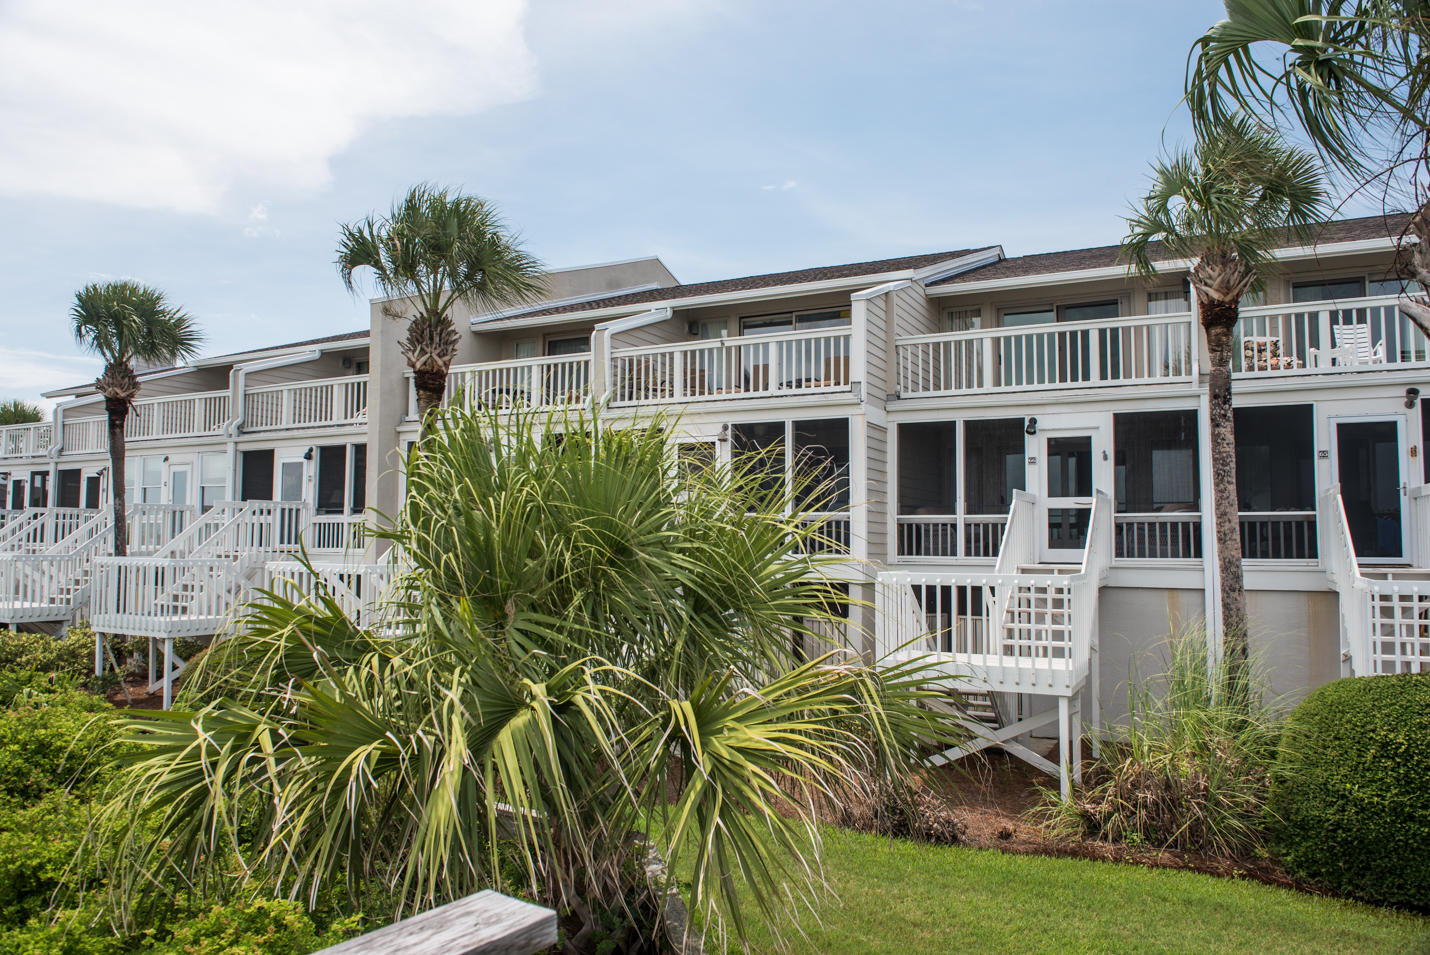 Beach Club Villas Homes For Sale - 66 Beach Club Villas, Isle of Palms, SC - 32